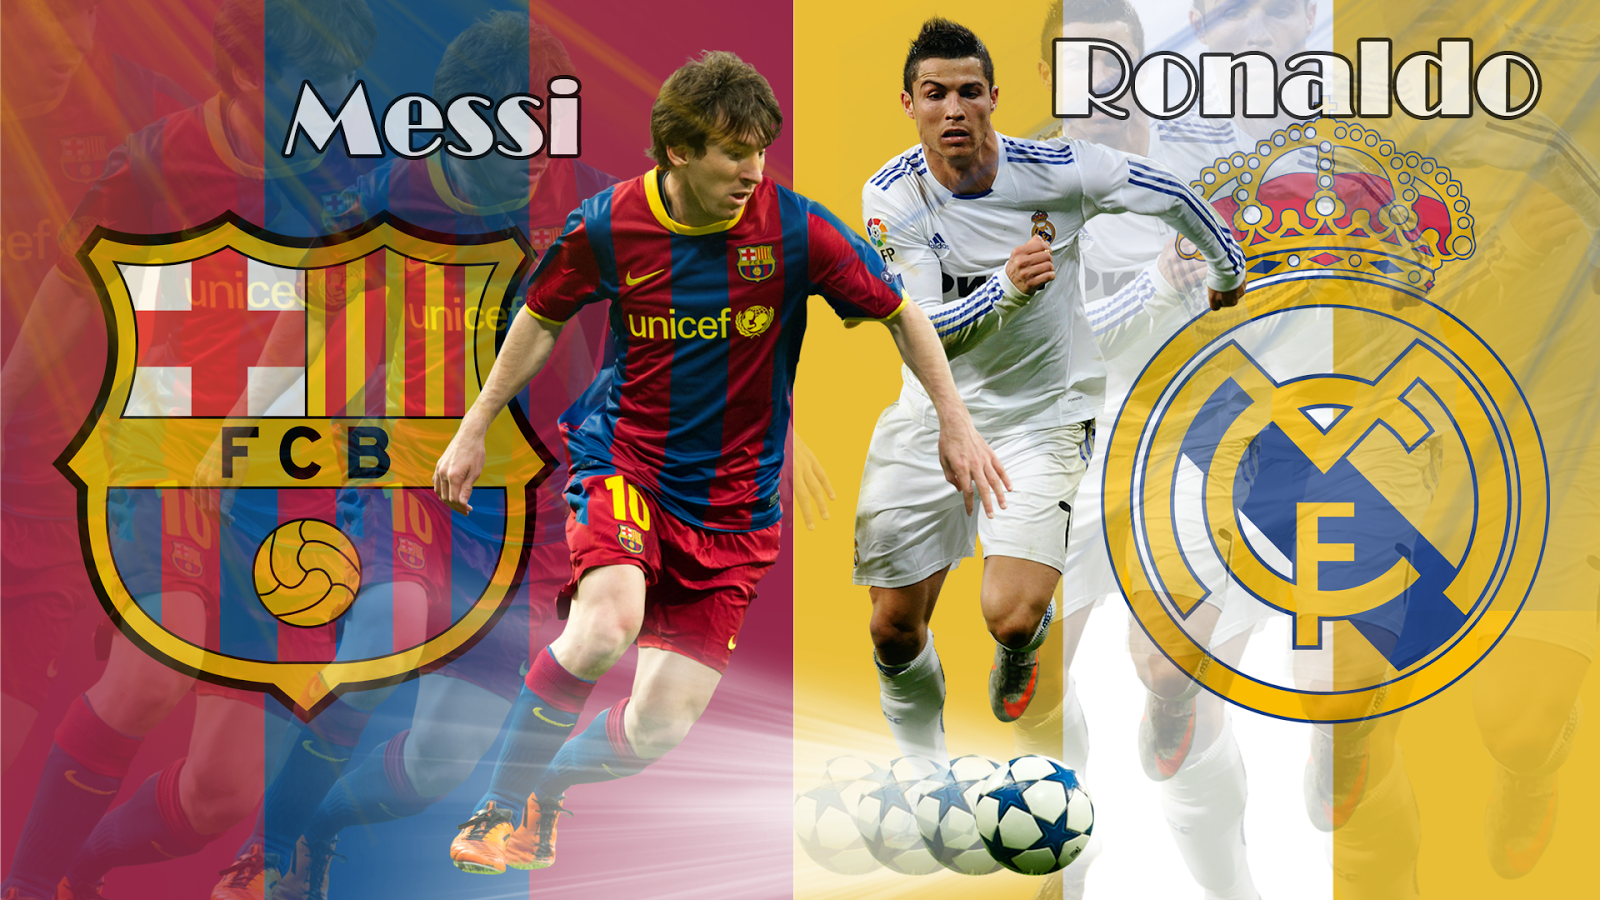 Lionel Messi Vs Cristiano Ronaldo Wallpapers It 39 S All About Wallpapers